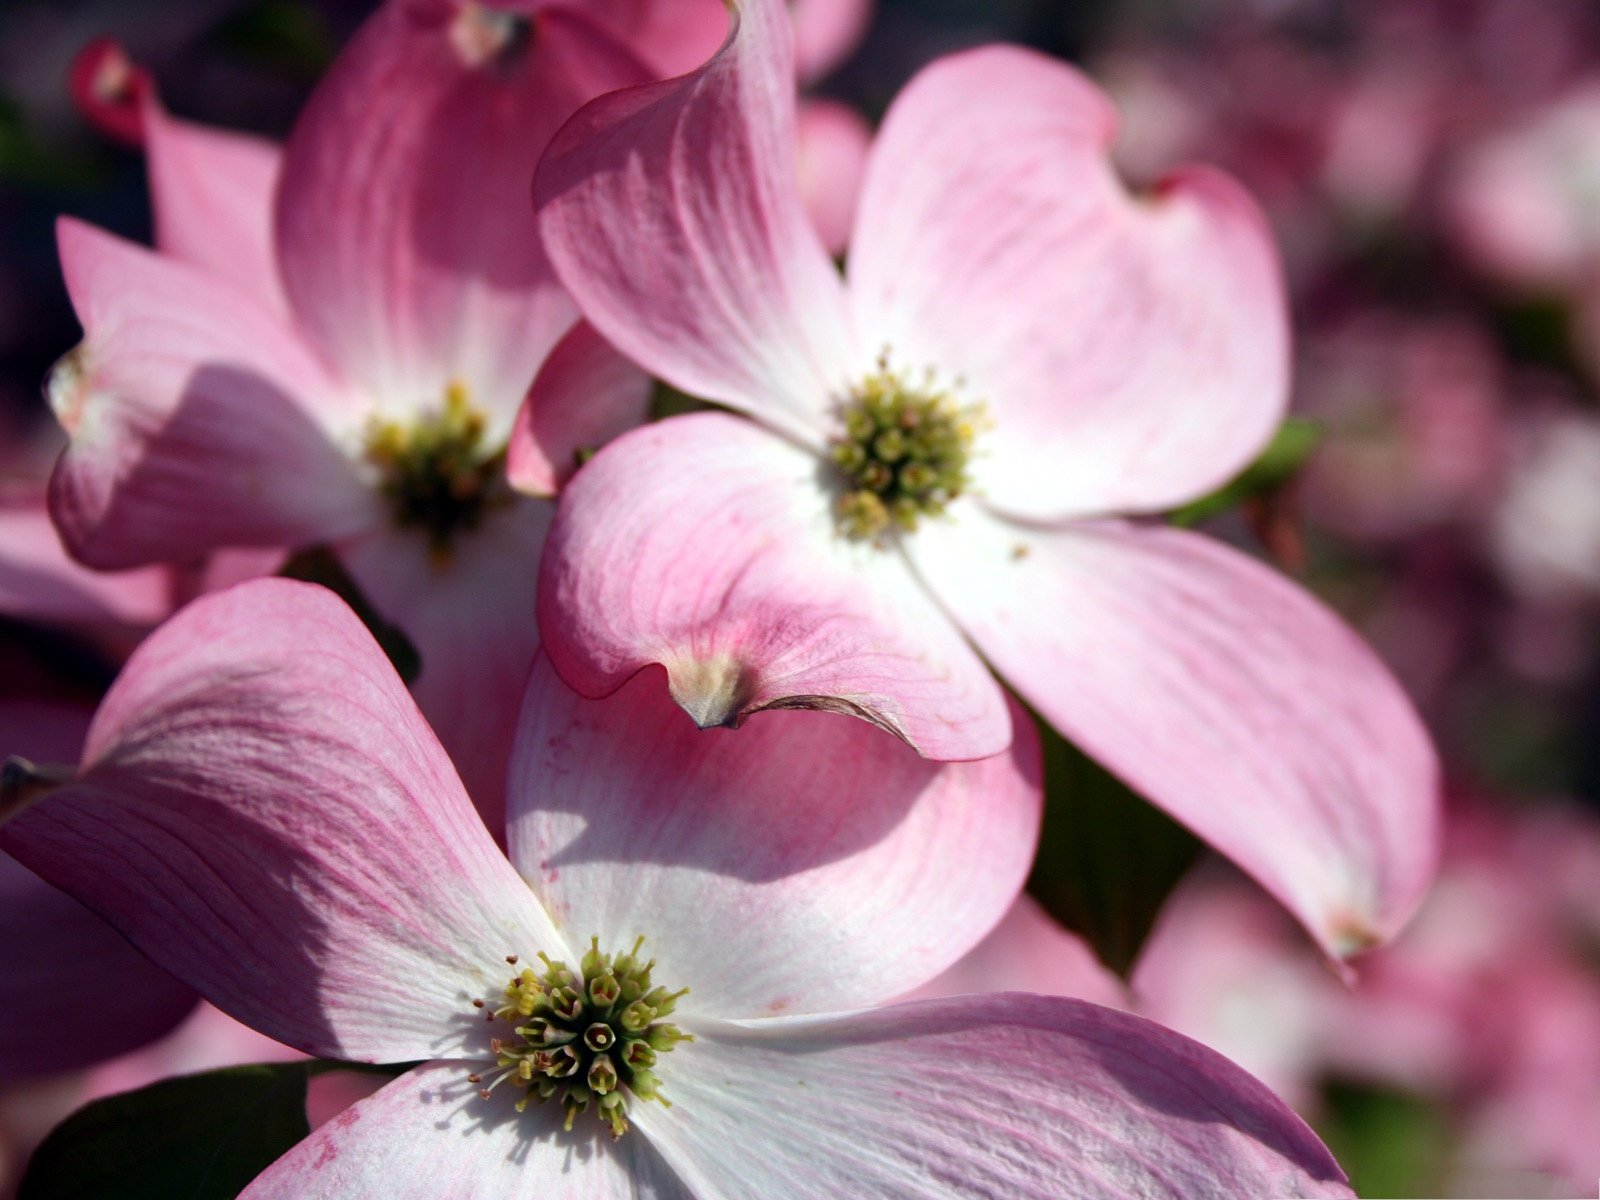 click to free download the wallpaper--Dogwood Flowers Image, Pink and Beautiful Flowers, Nice-Looking and Impressive 1600X1200 free wallpaper download